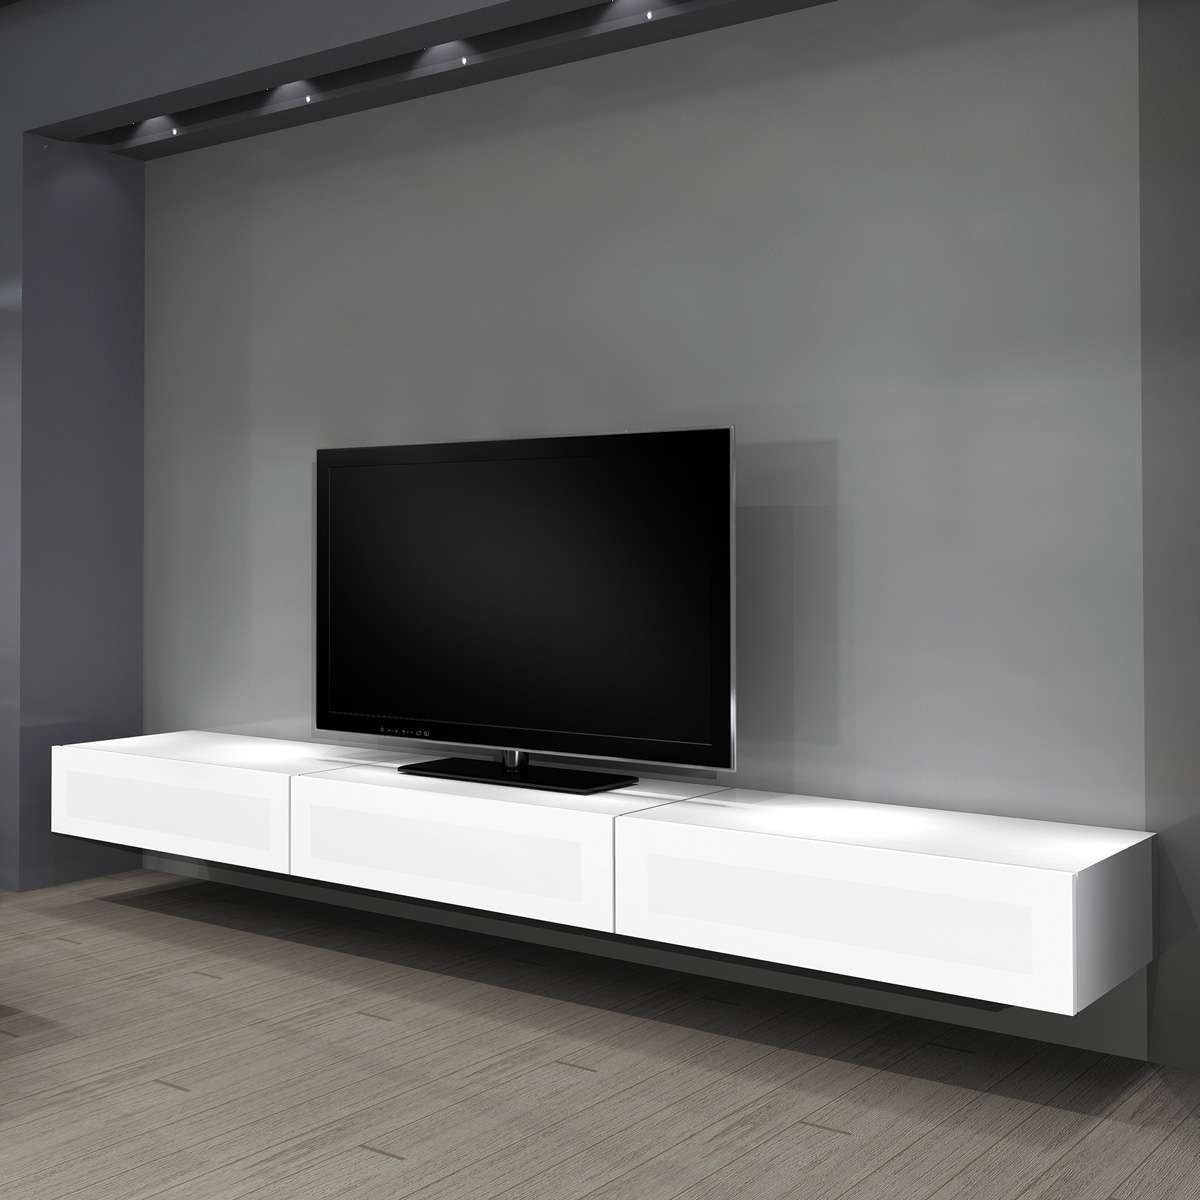 Nice Grey Concrete Wall Of The Ikea Tv Cabinet Wall Mount That Can Inside Modern Tv Stands With Mount (View 7 of 15)